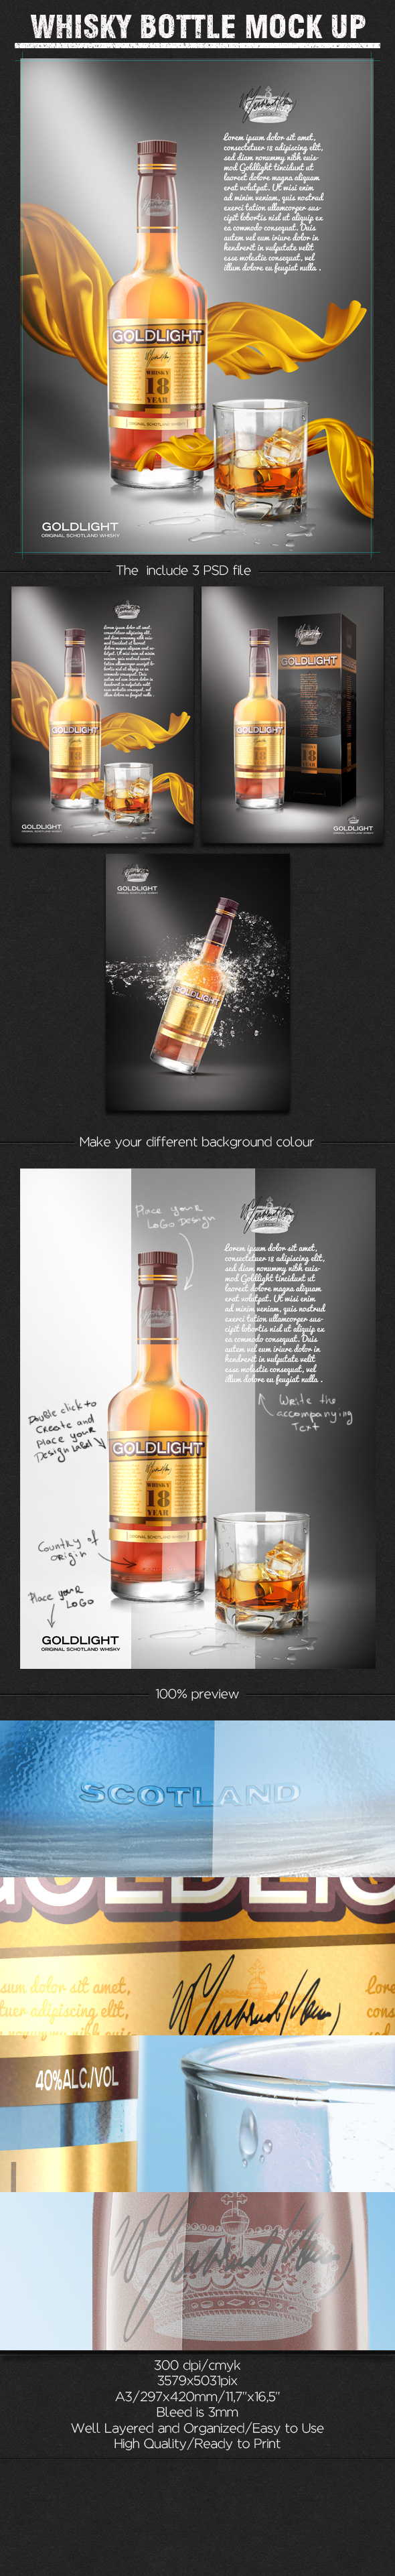 Mockup botella whisky